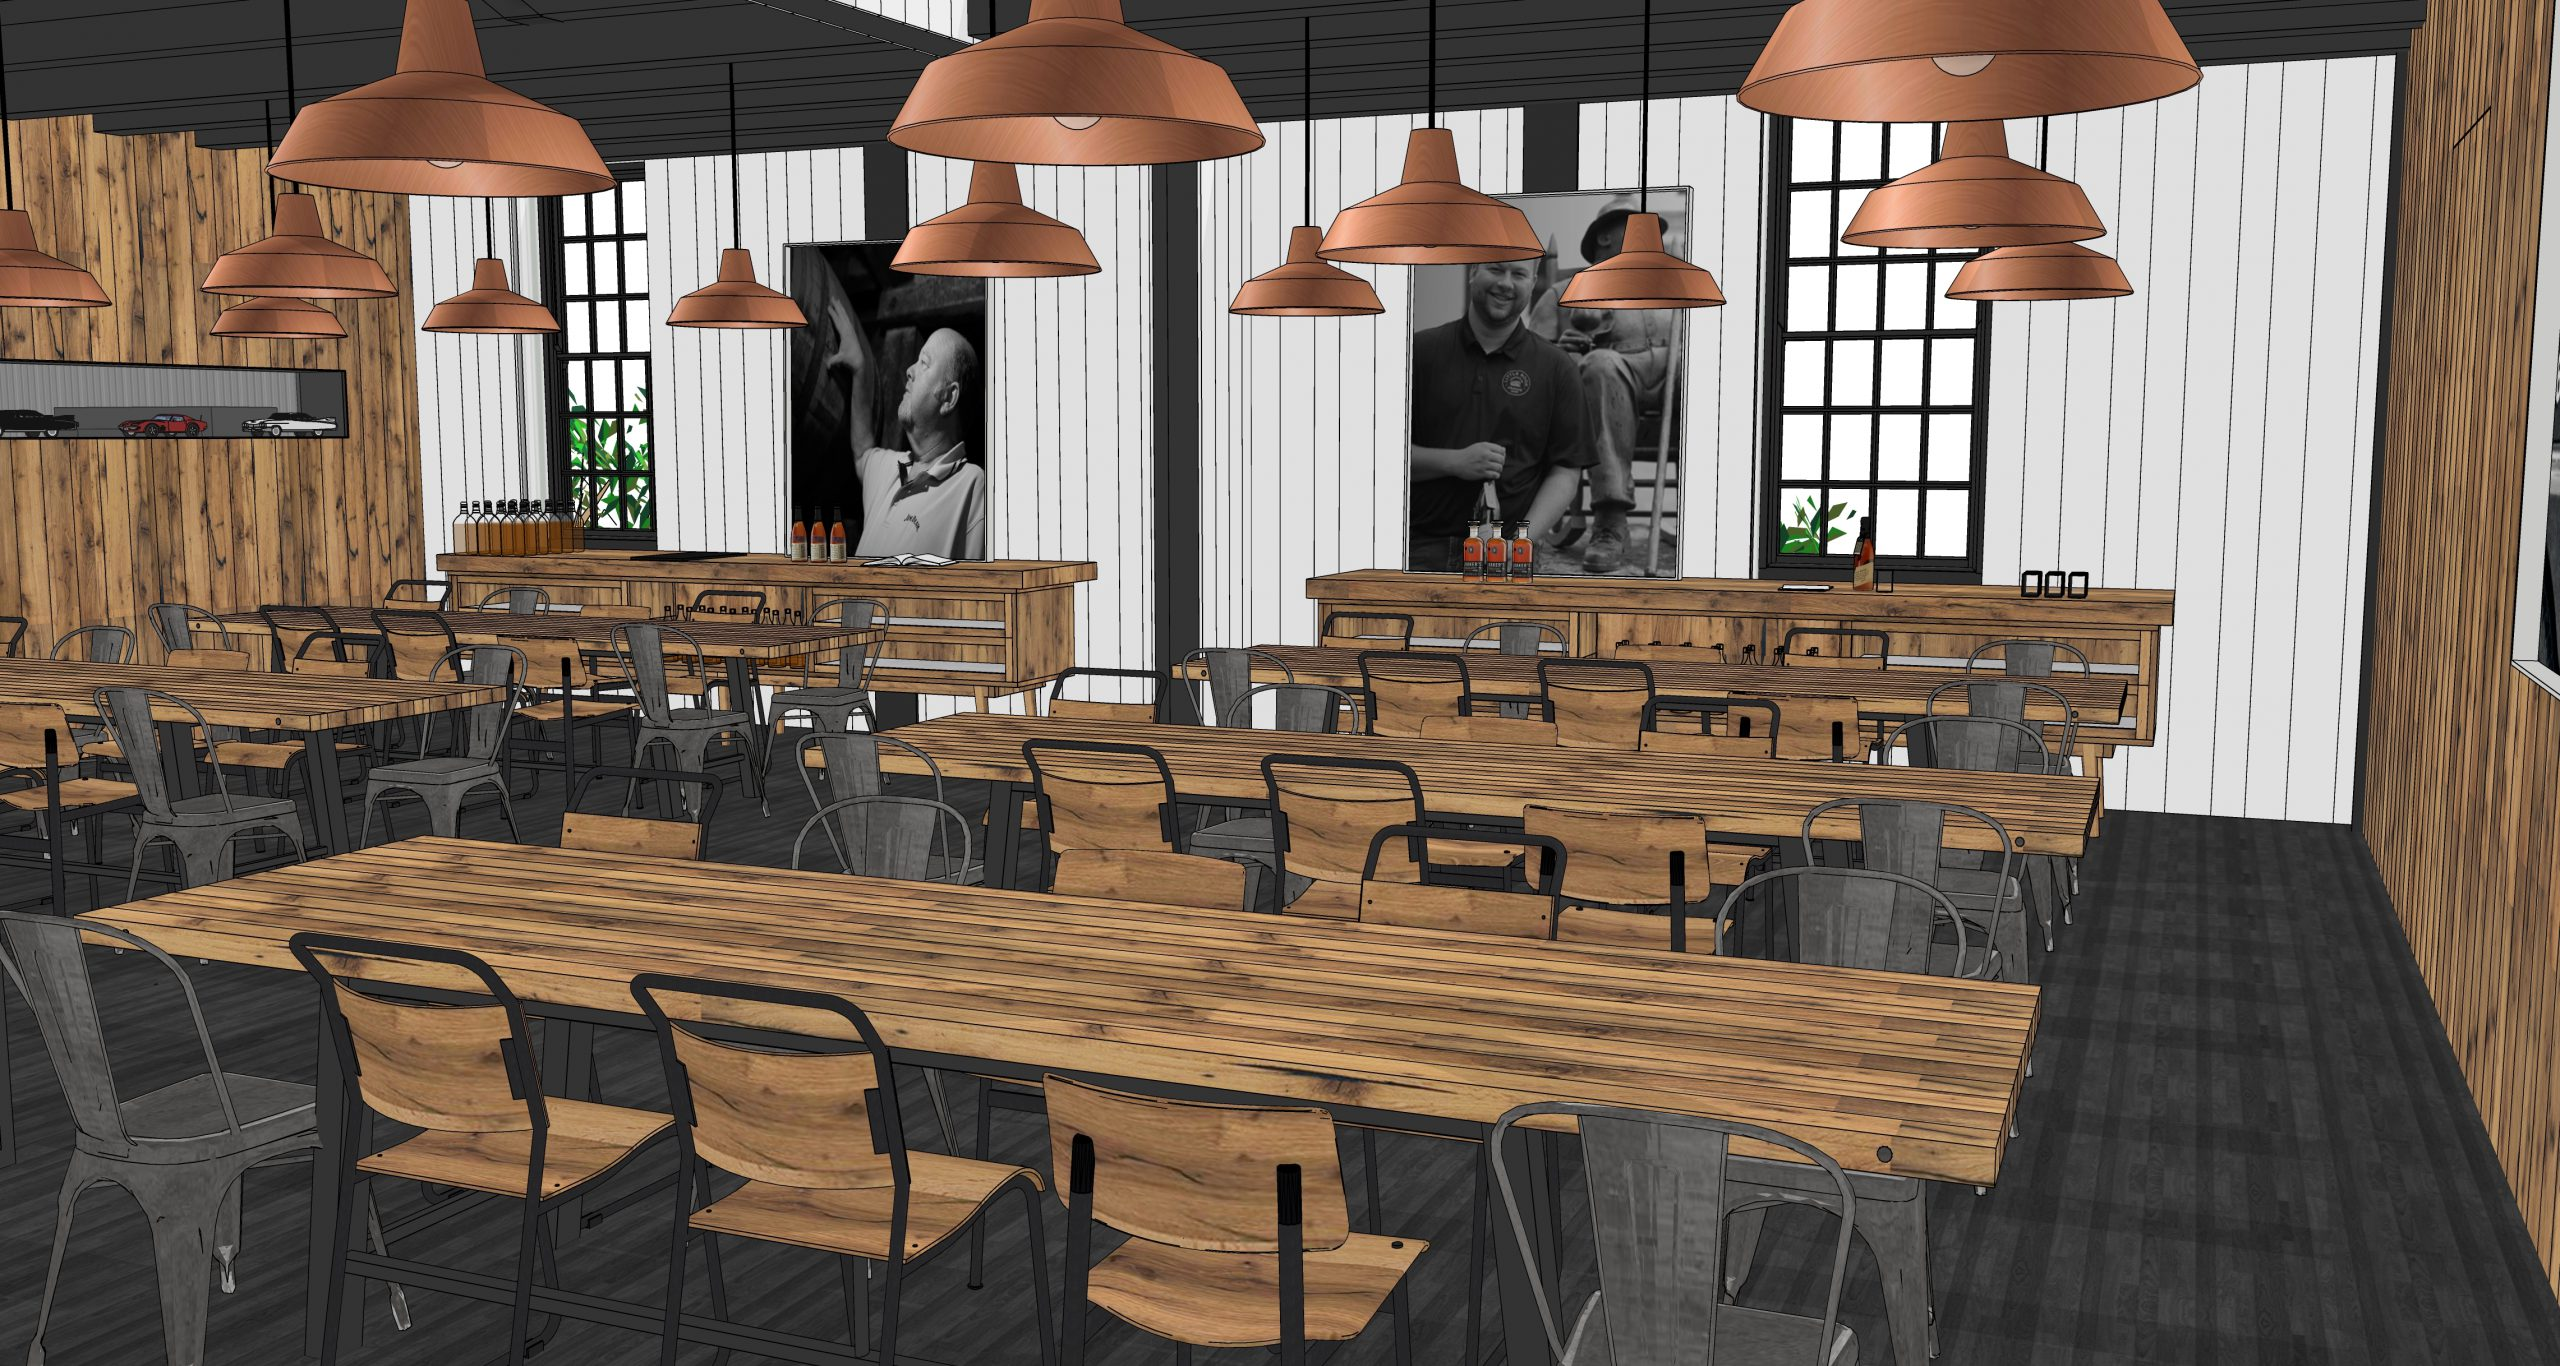 An architect's rendering of the new tasting rooms at the Jim Beam American Outpost in Clermont, Kentucky. Image courtesy James B. Beam Distilling Company.